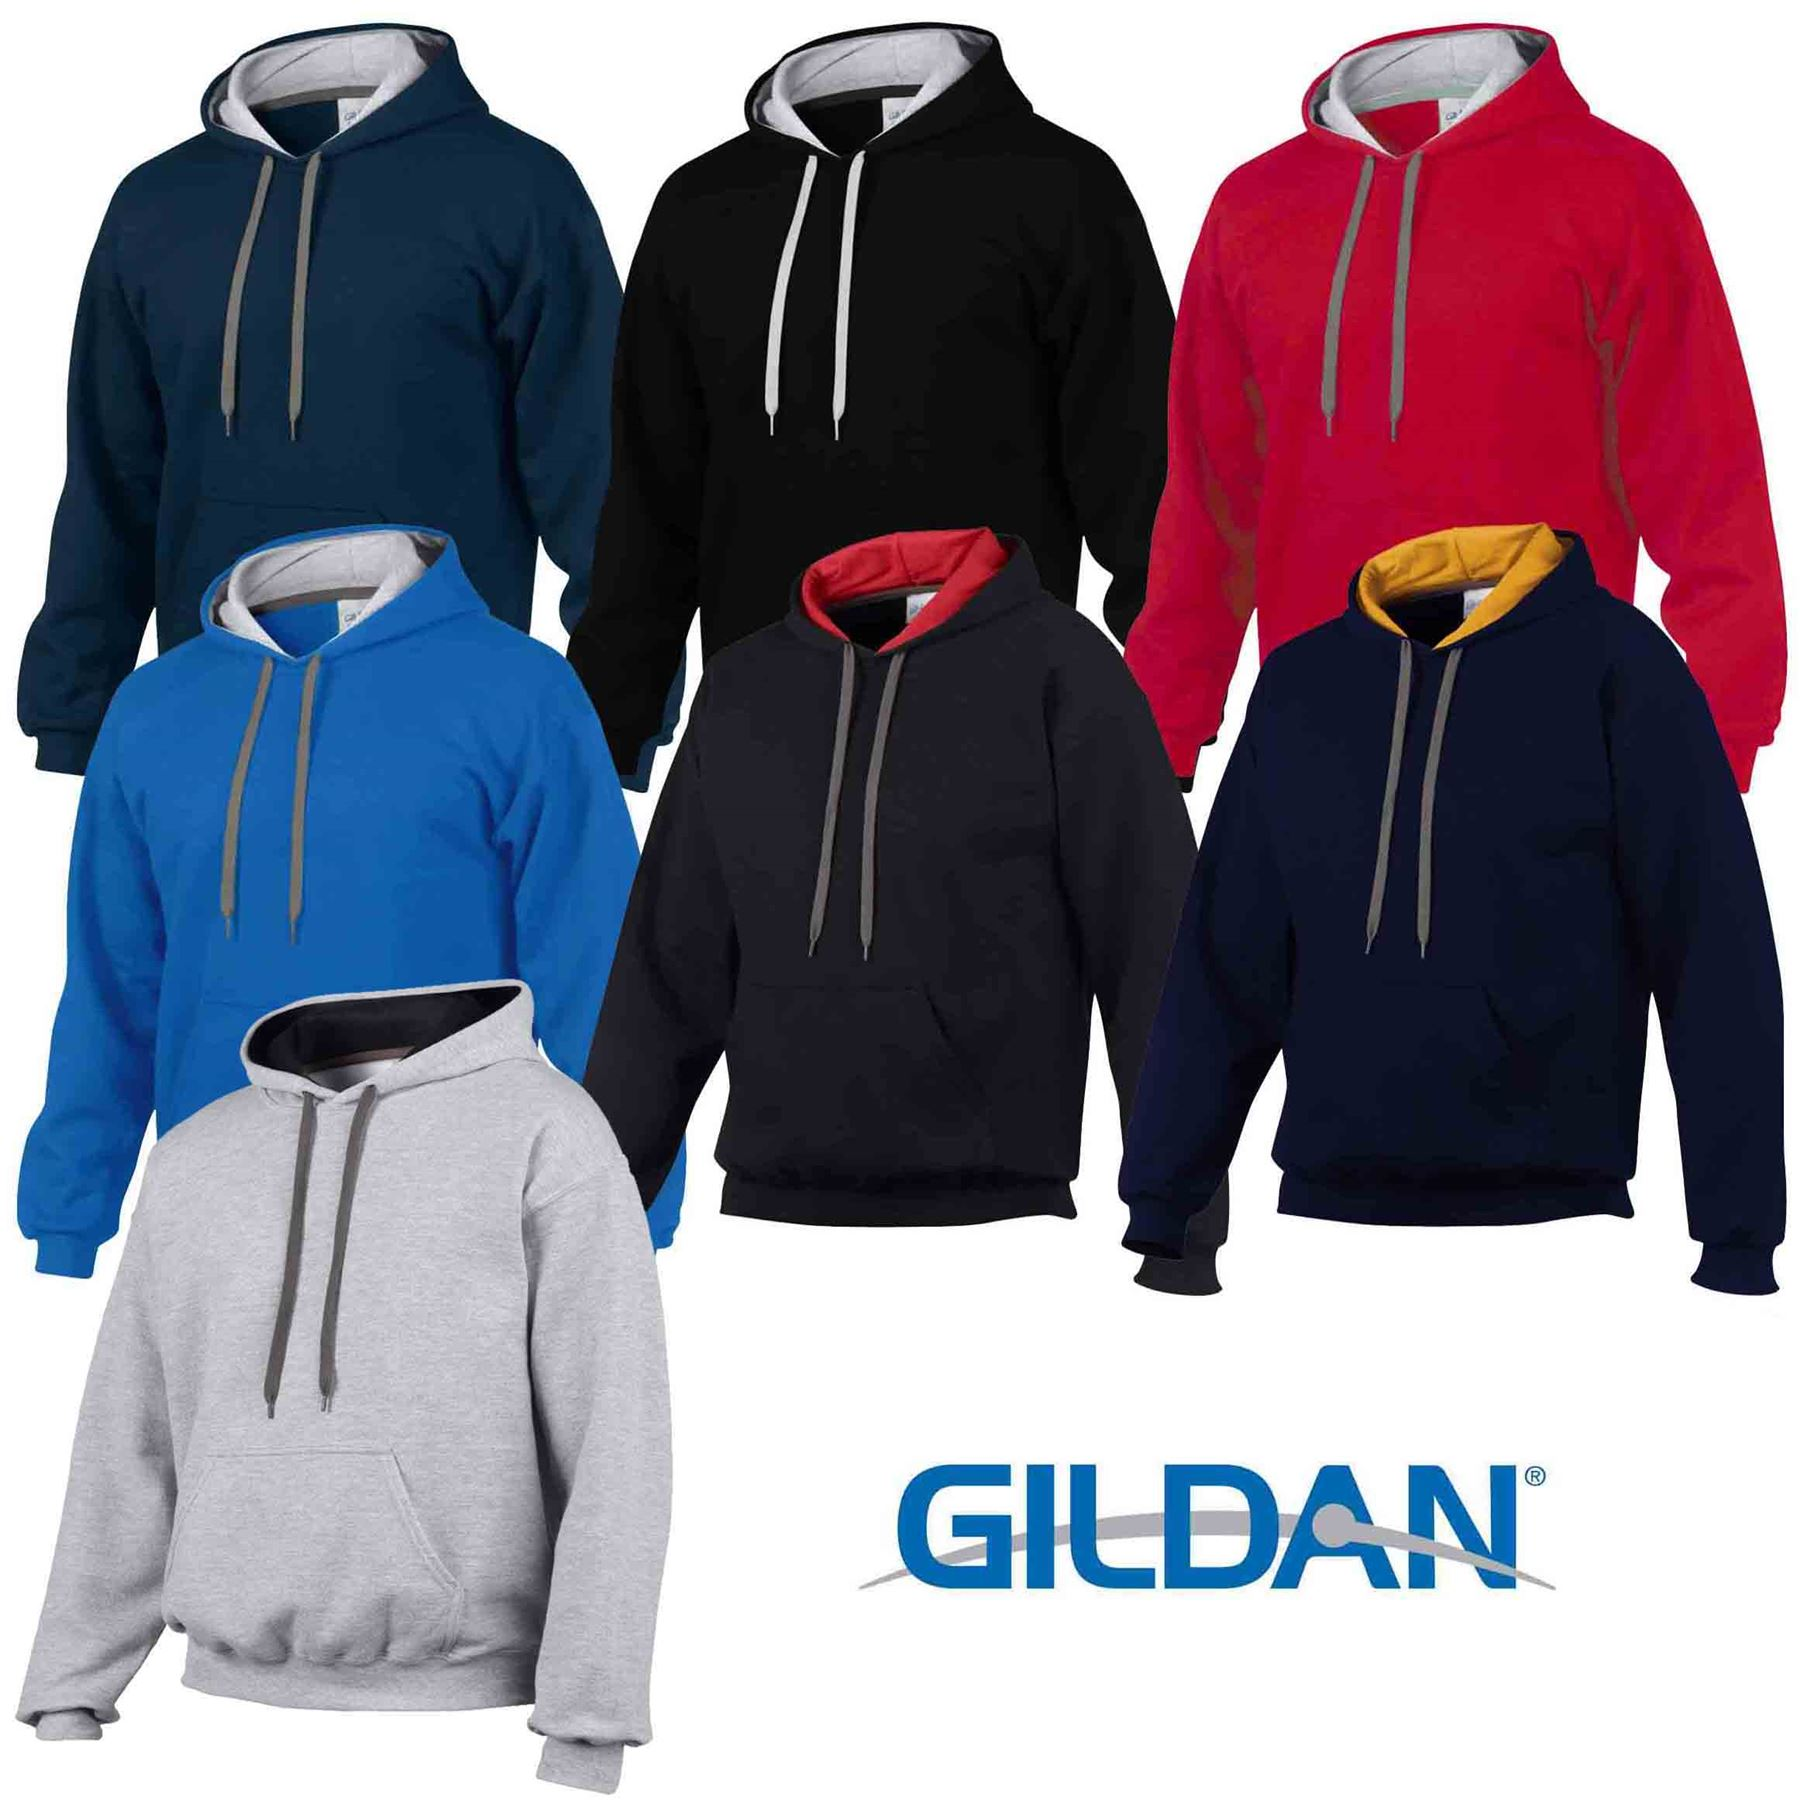 Details about Gildan Heavy Blend Plain Contrast Hooded Sweatshirt Hoodie Sweat Hoody Jumper